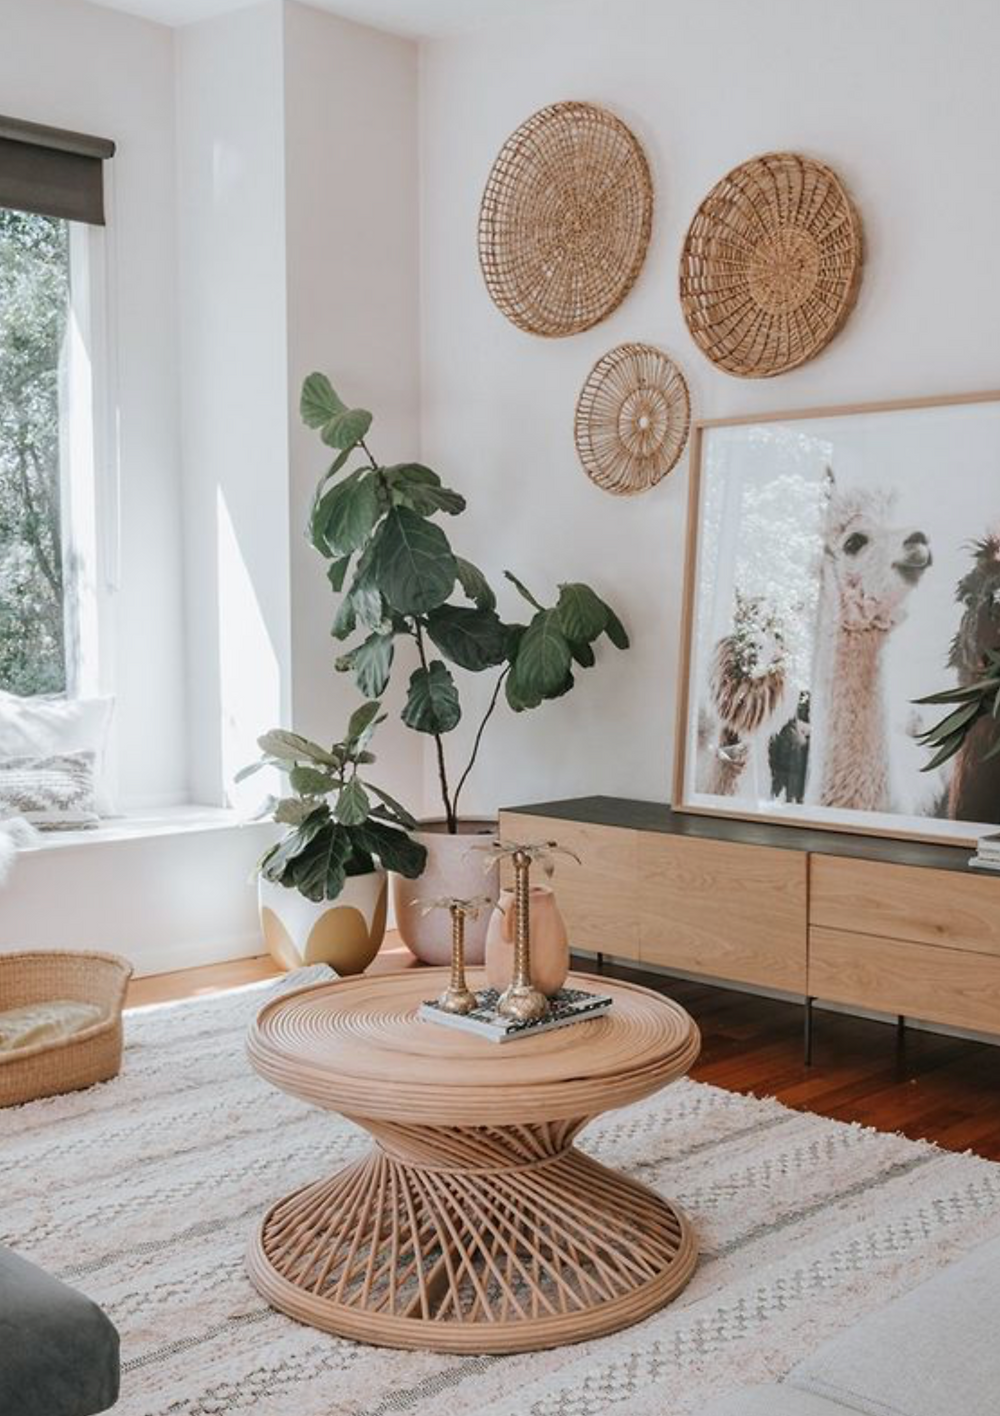 A living room with some vintage baskets hanging on the wall, a wool cream rug on. the floor and some natural wood tables.